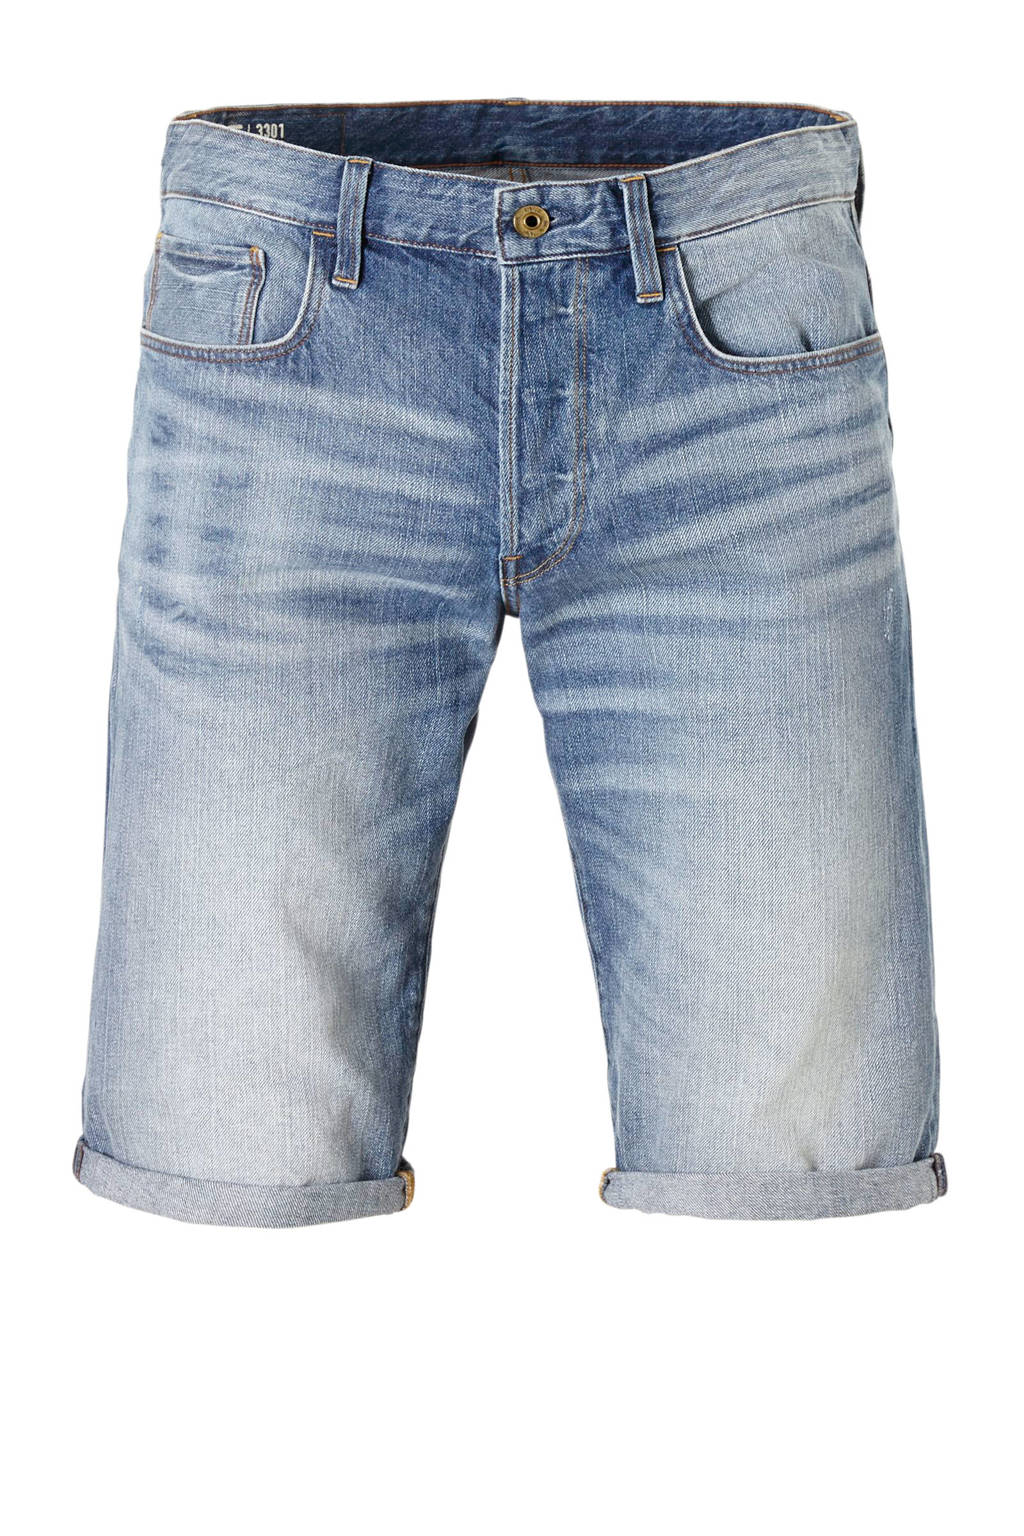 G-Star RAW 3301 regular fit jeans short, Dark denim